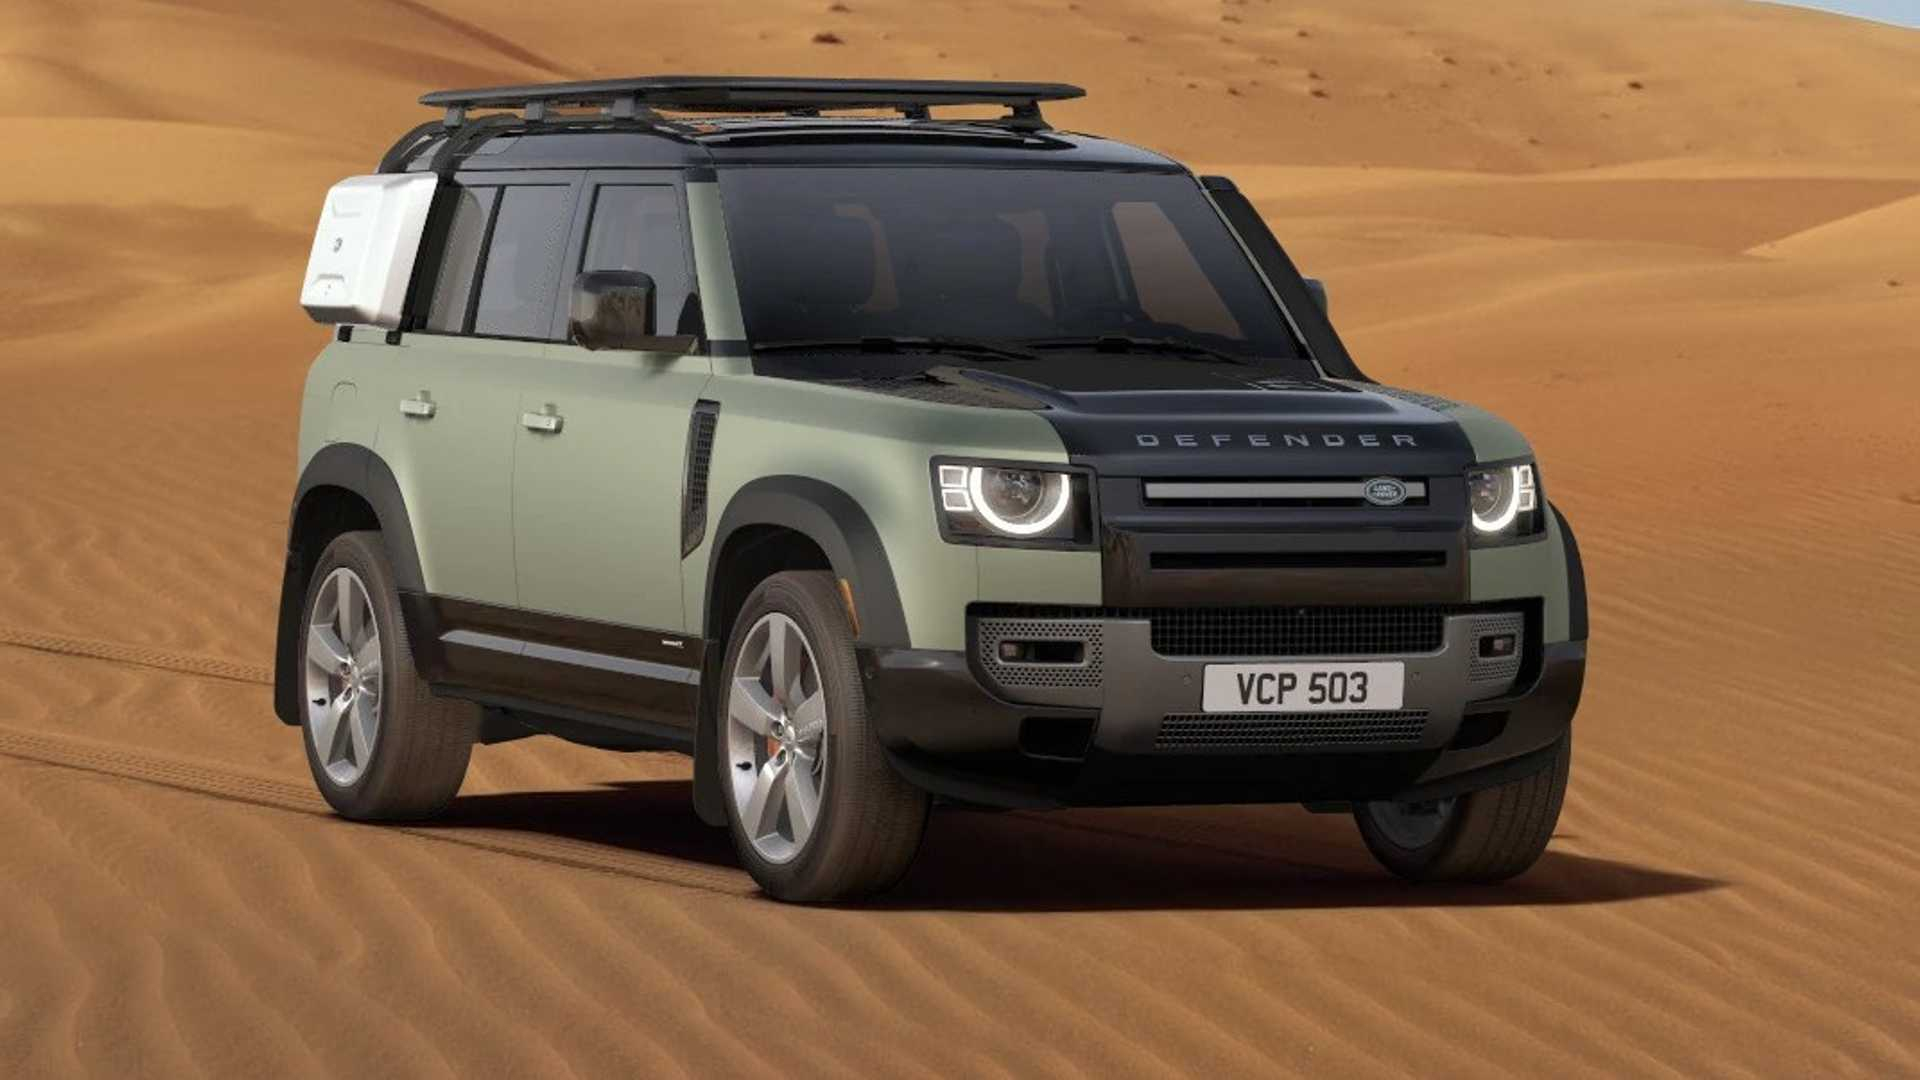 2021 Land Rover Discovery Maintenance Schedule, Updates ...